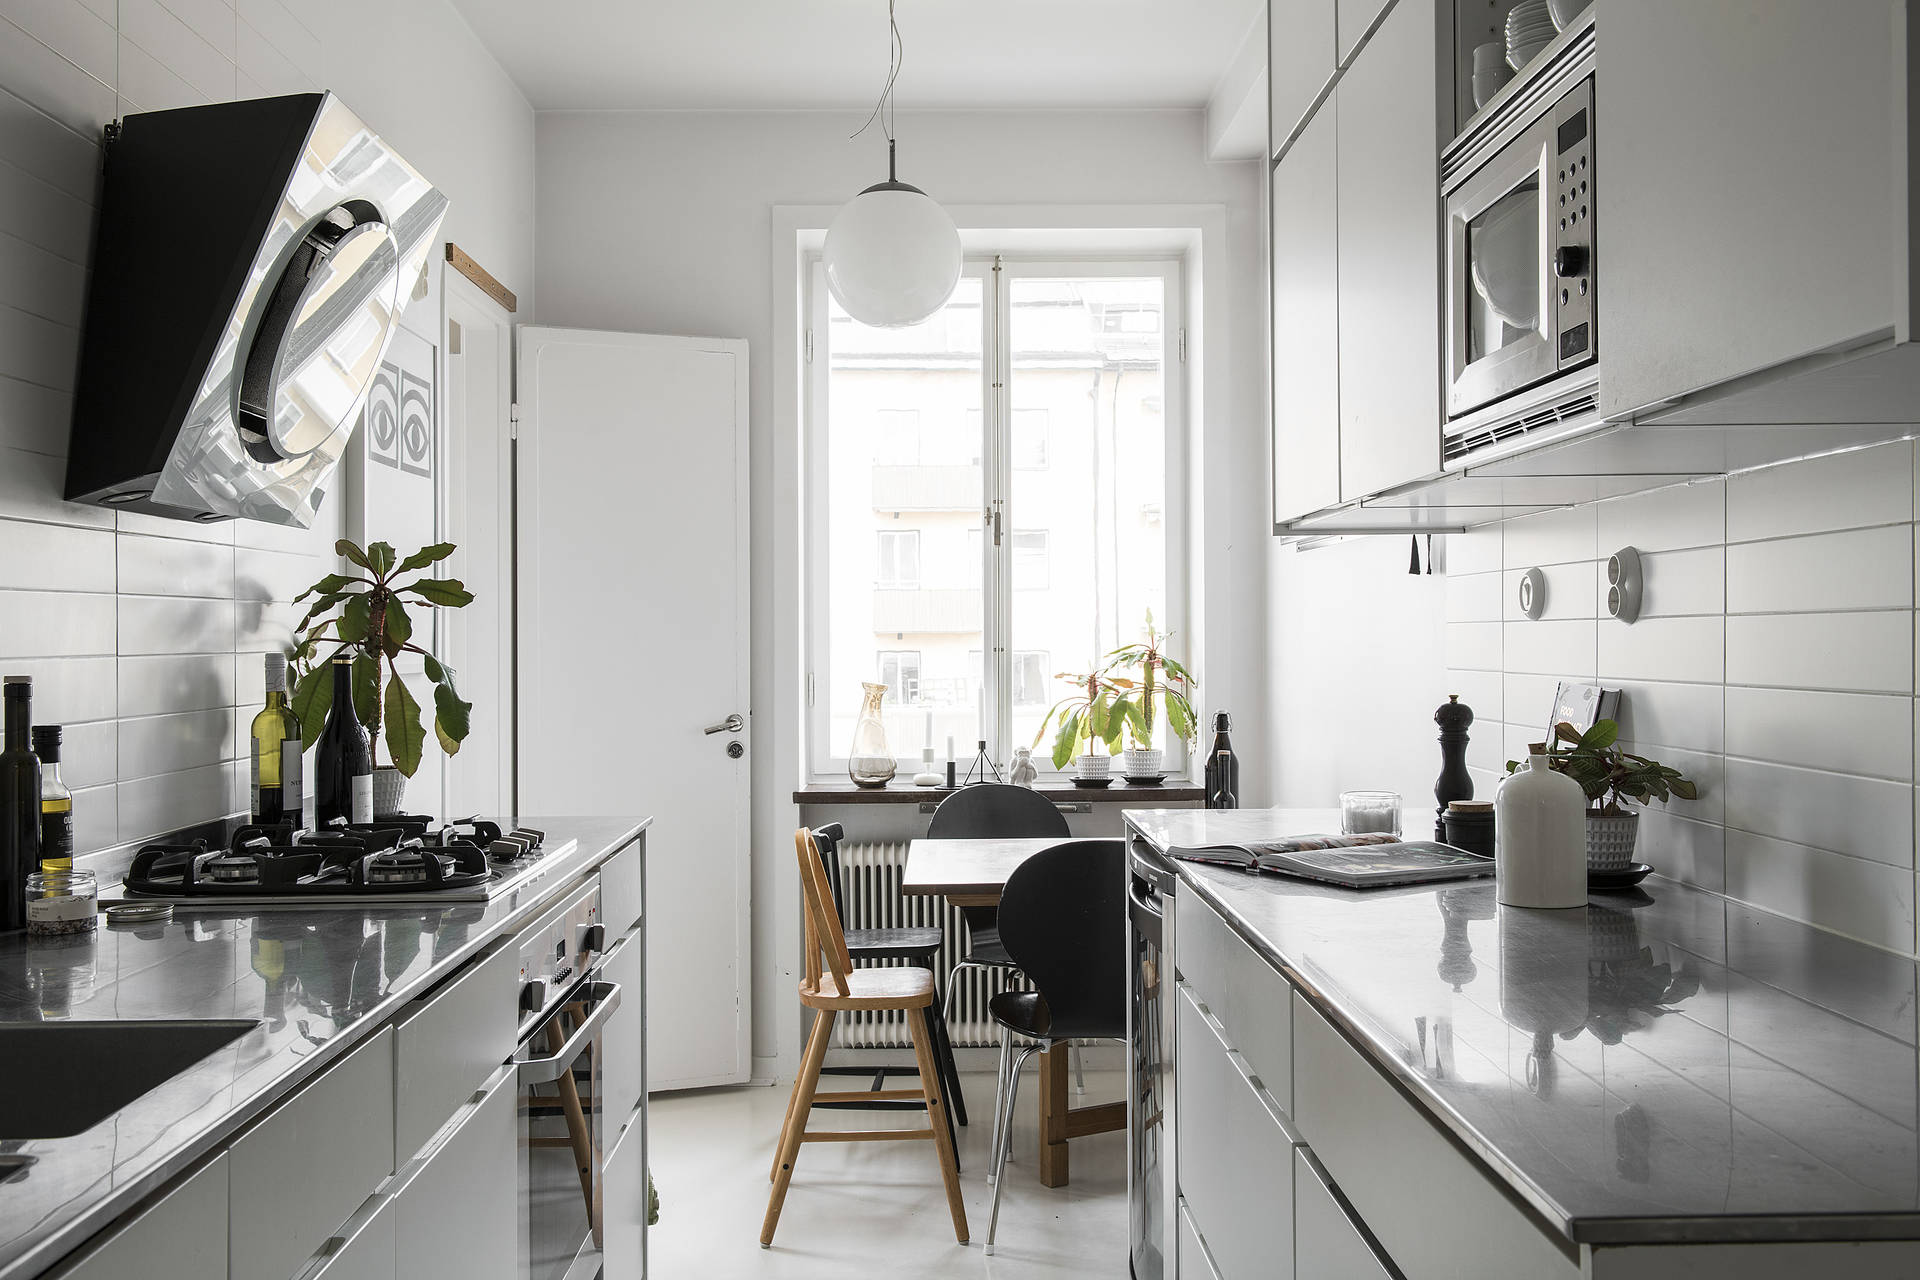 The small space is utilized to perfection even adding a small breakfast corner.